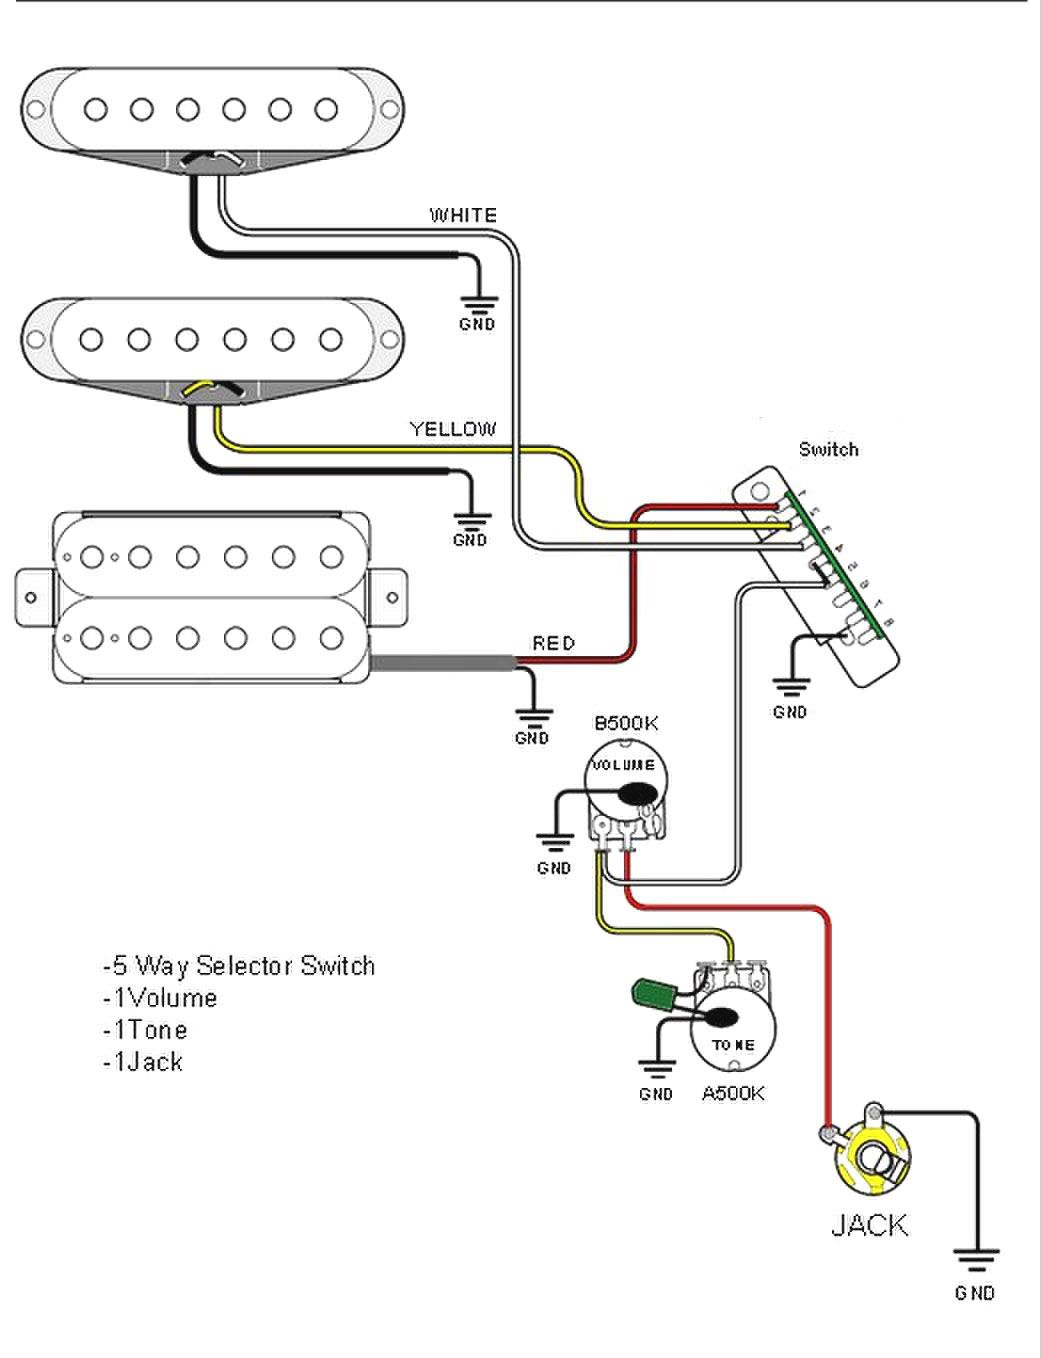 jeff baxter strat wiring diagram Google Search Diagram